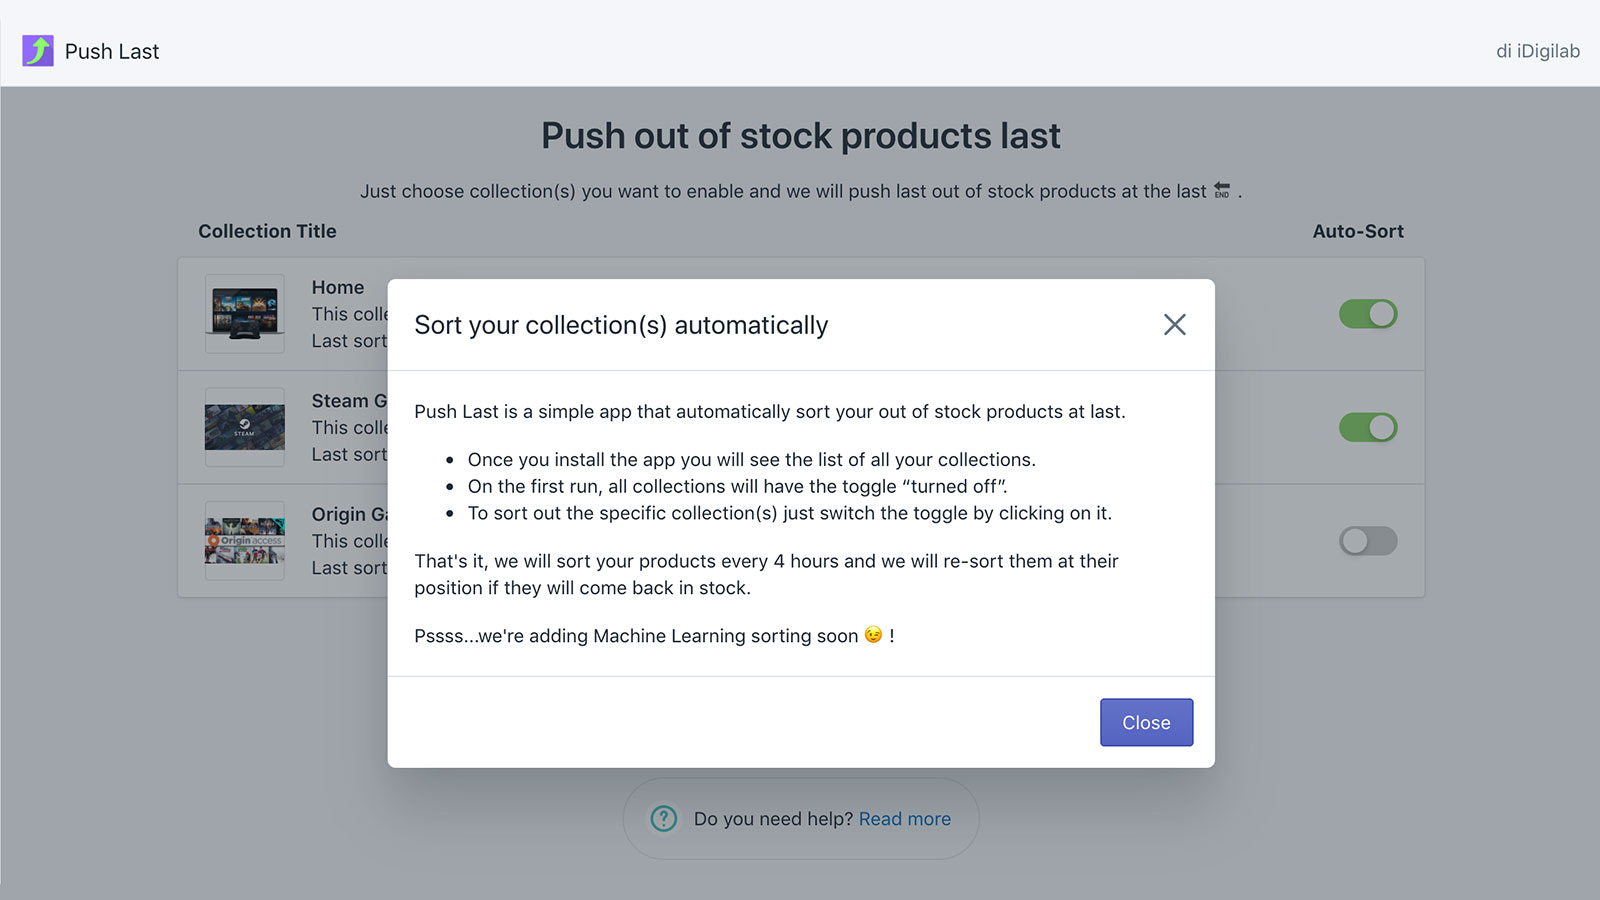 Push Out Of Stock Products to the End of Collections